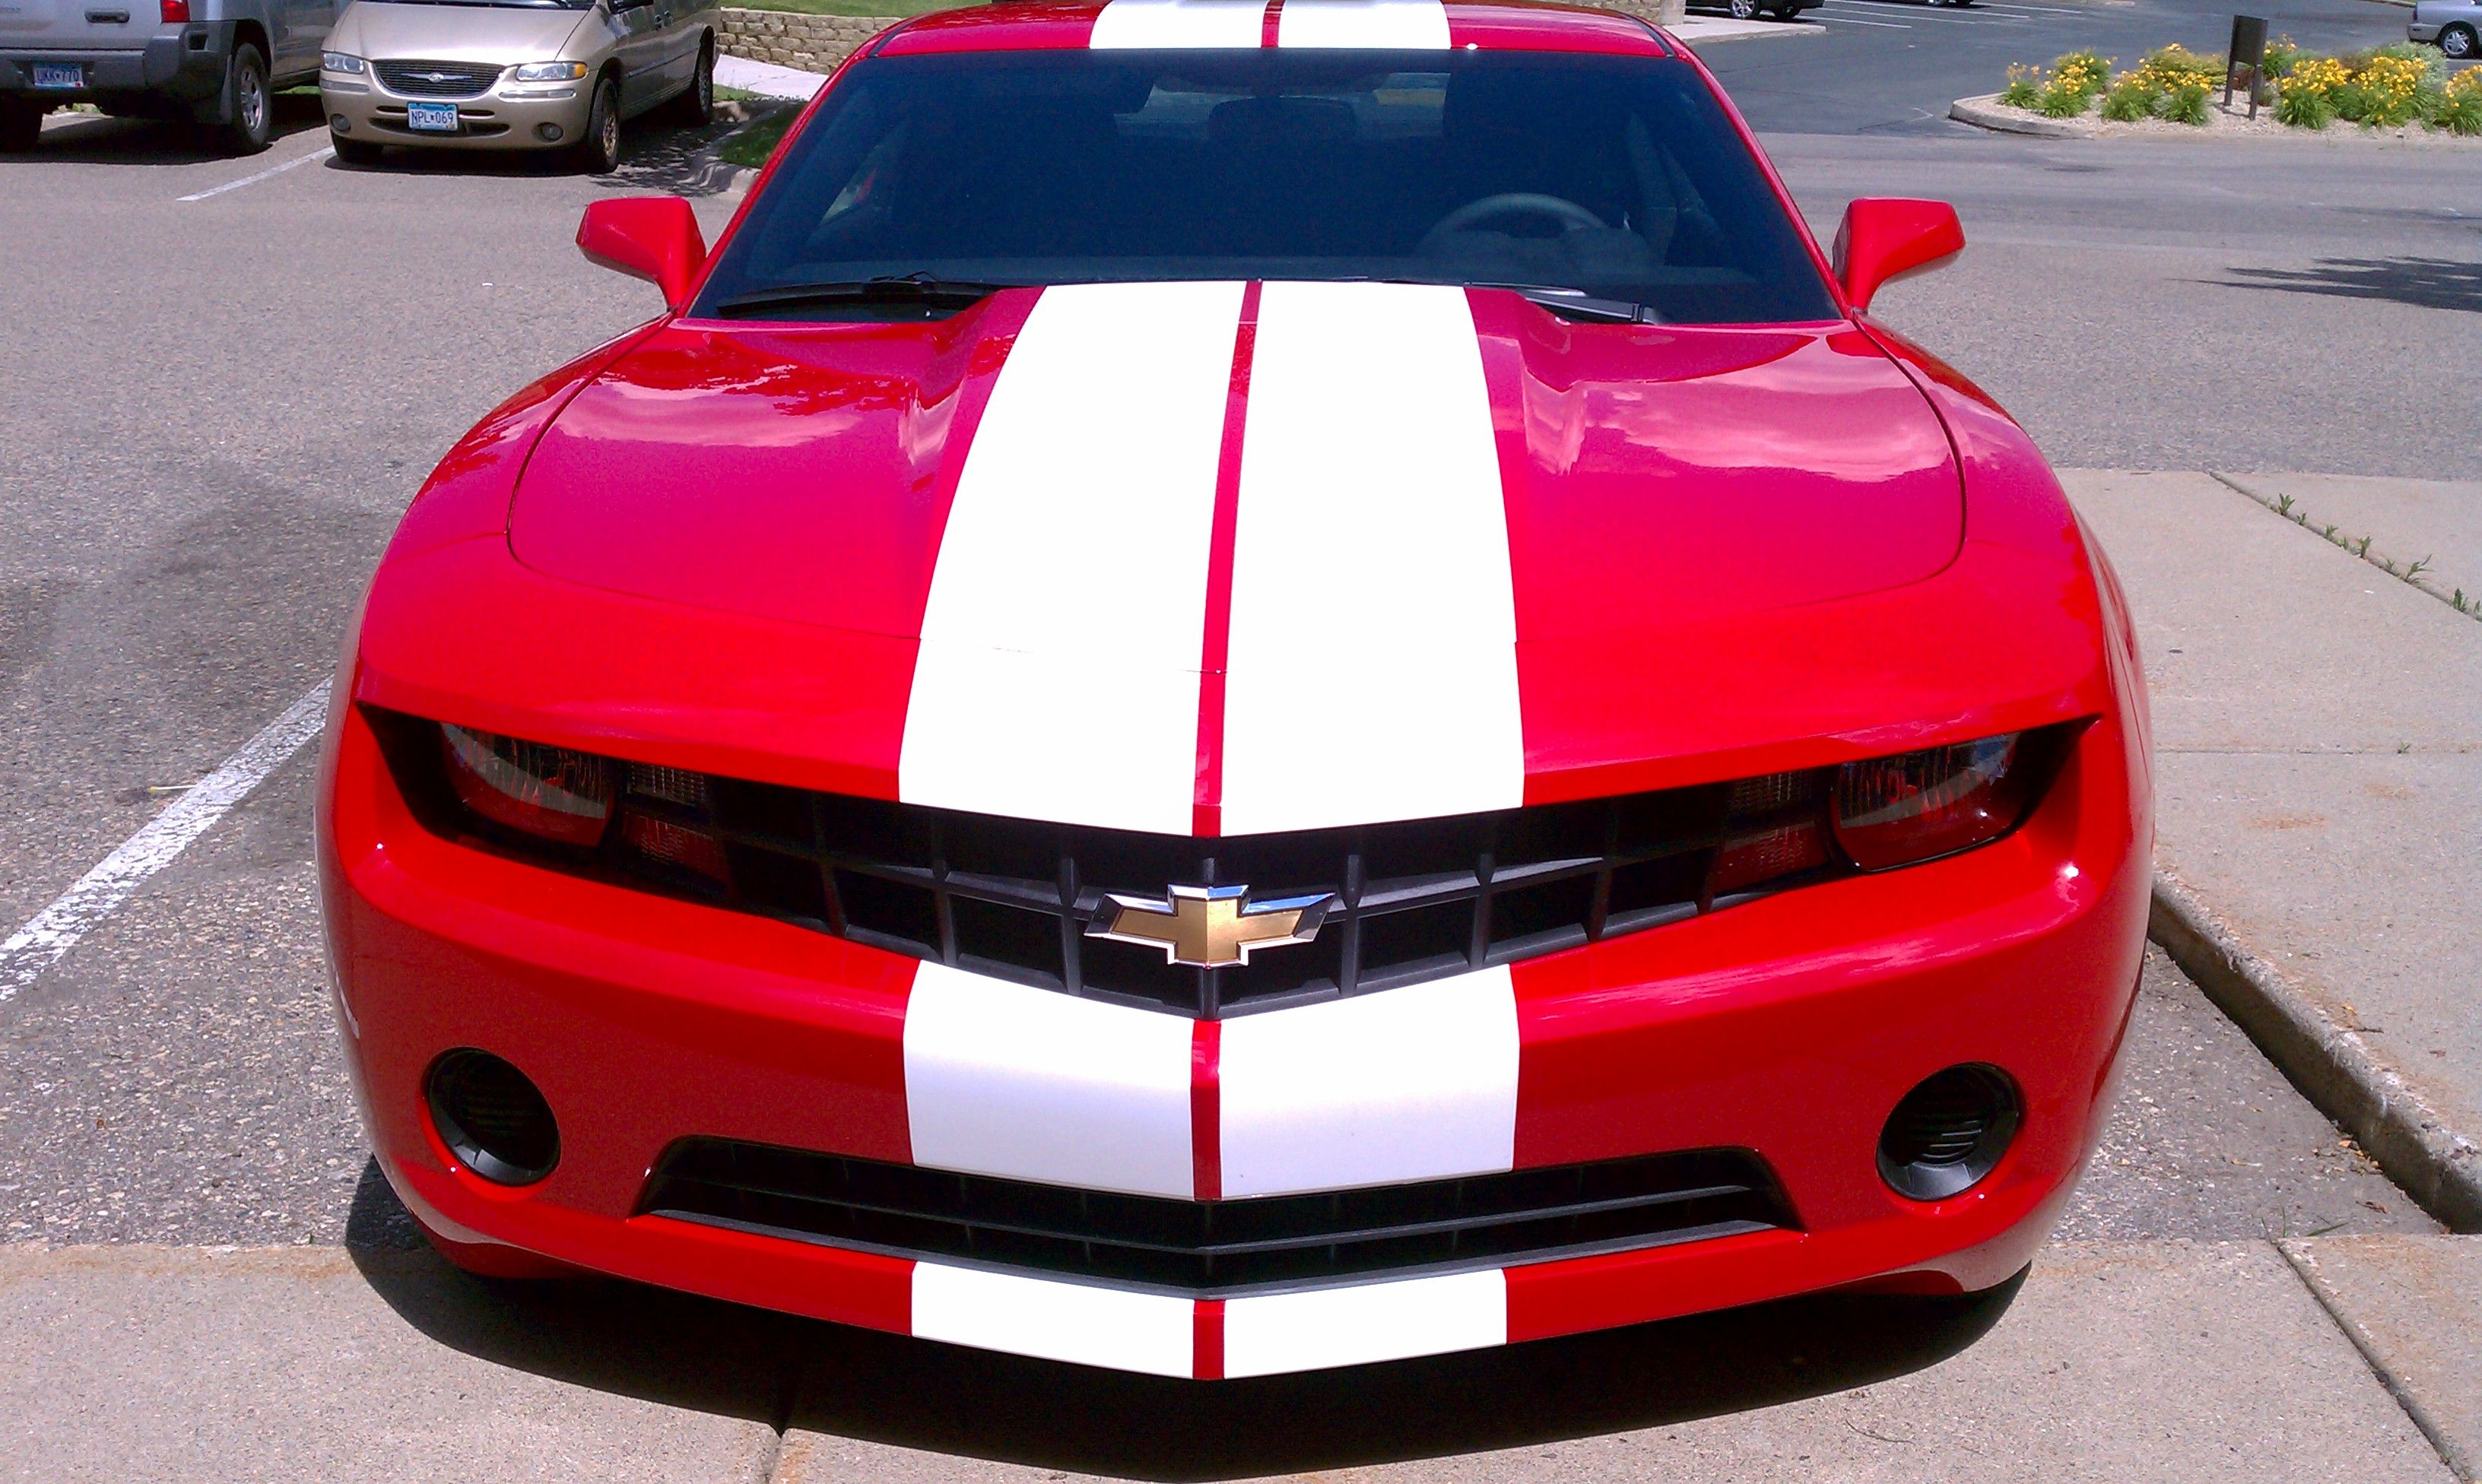 Camaro Racing Stripes Camaro Racing Stripes Chevrolet